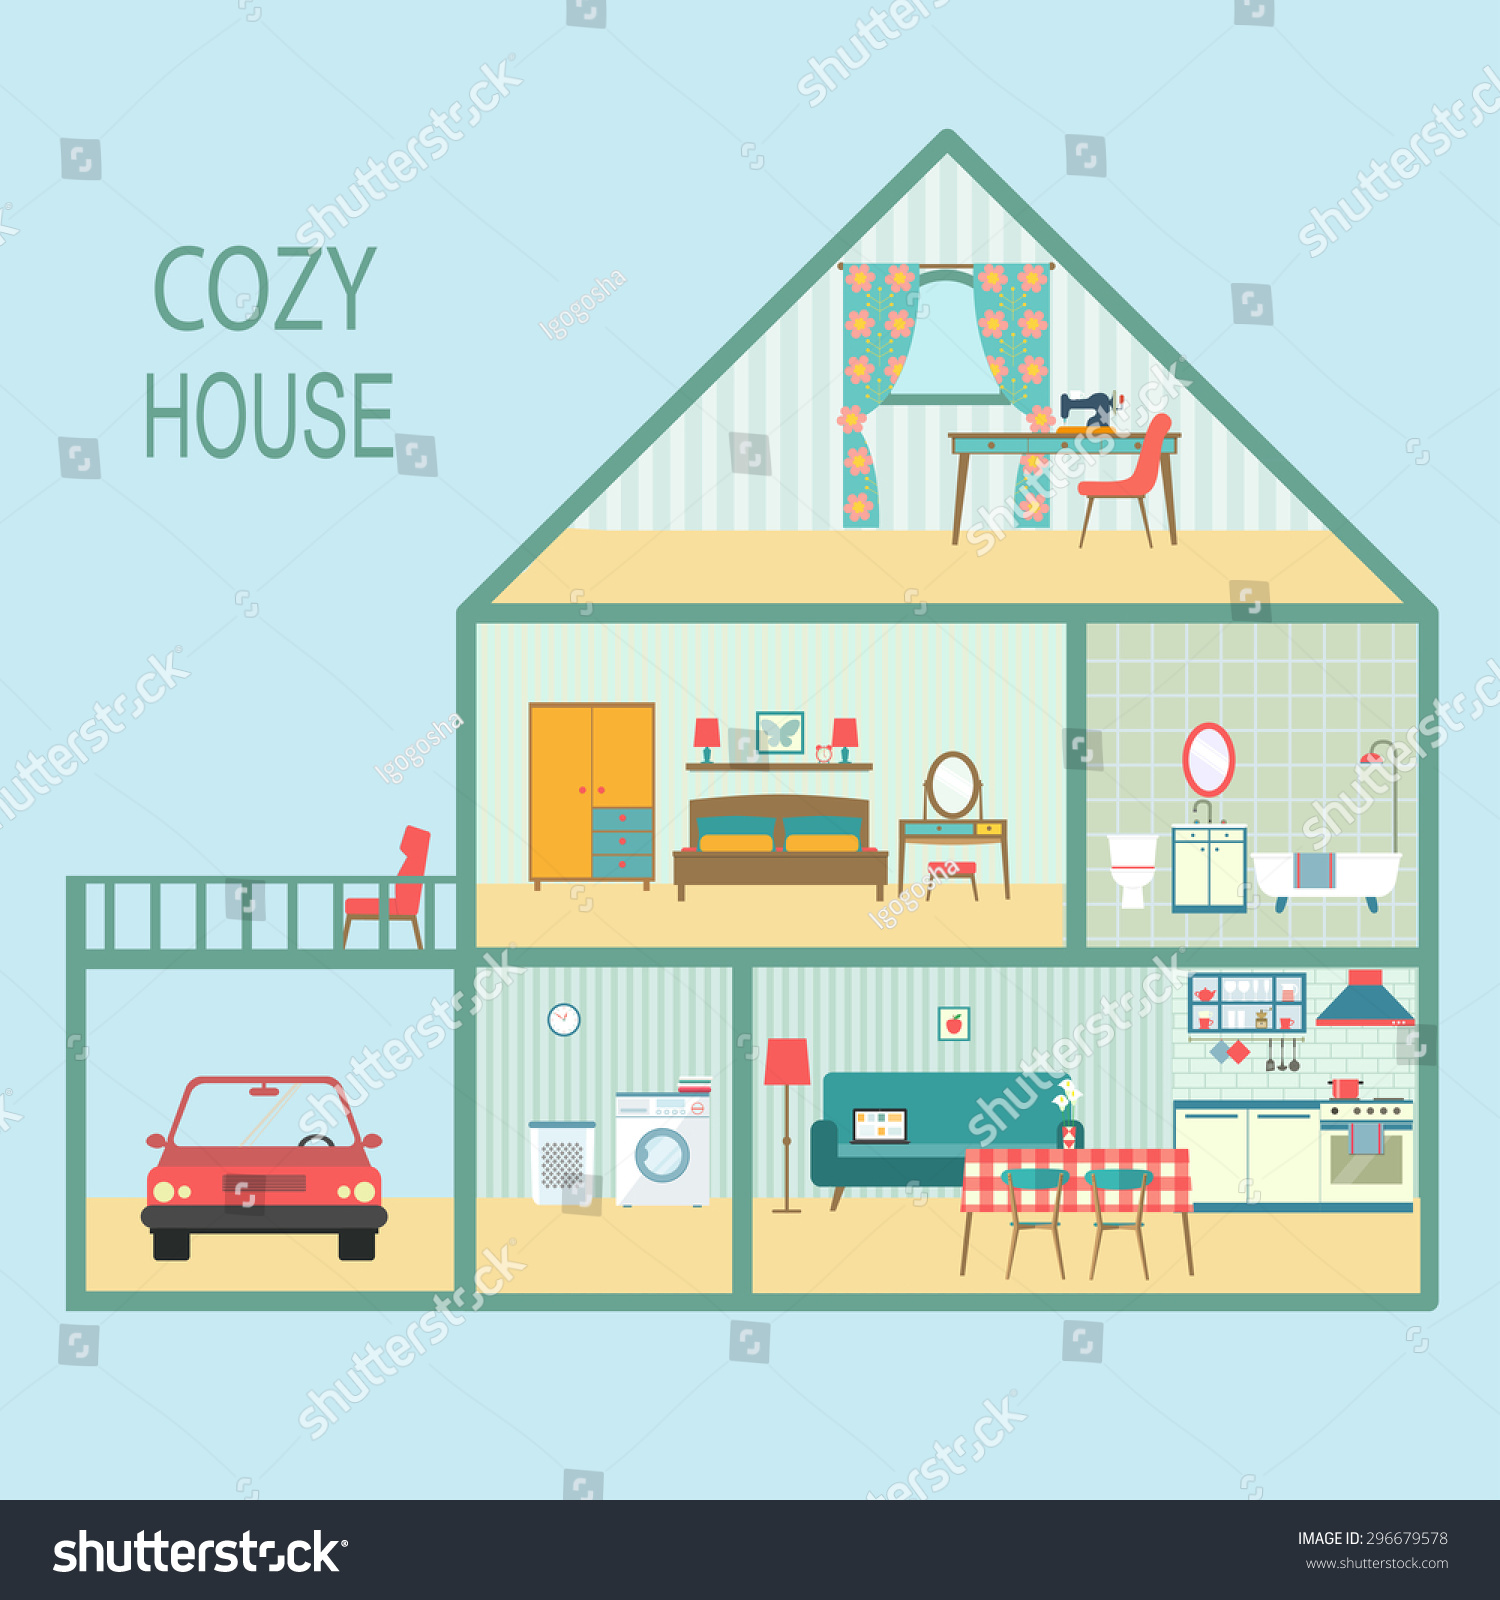 Cozy Living Room Vector Illustration: Flat Cozy House Section With Interior Living Room